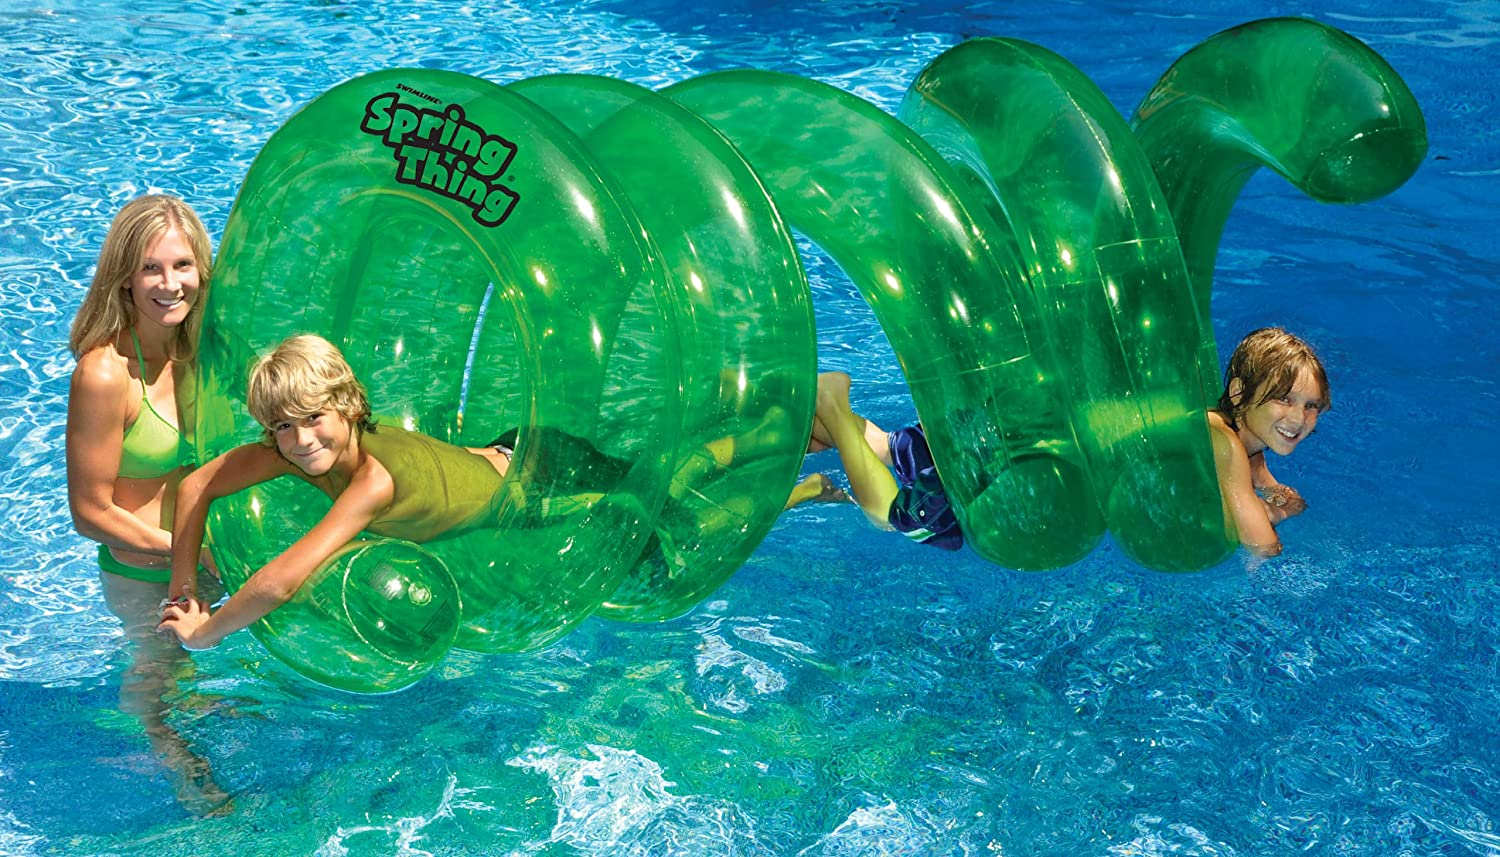 Charming Amazon.com: Swimline Spring Thing Inflatable Pool Toy: Garden U0026 Outdoor